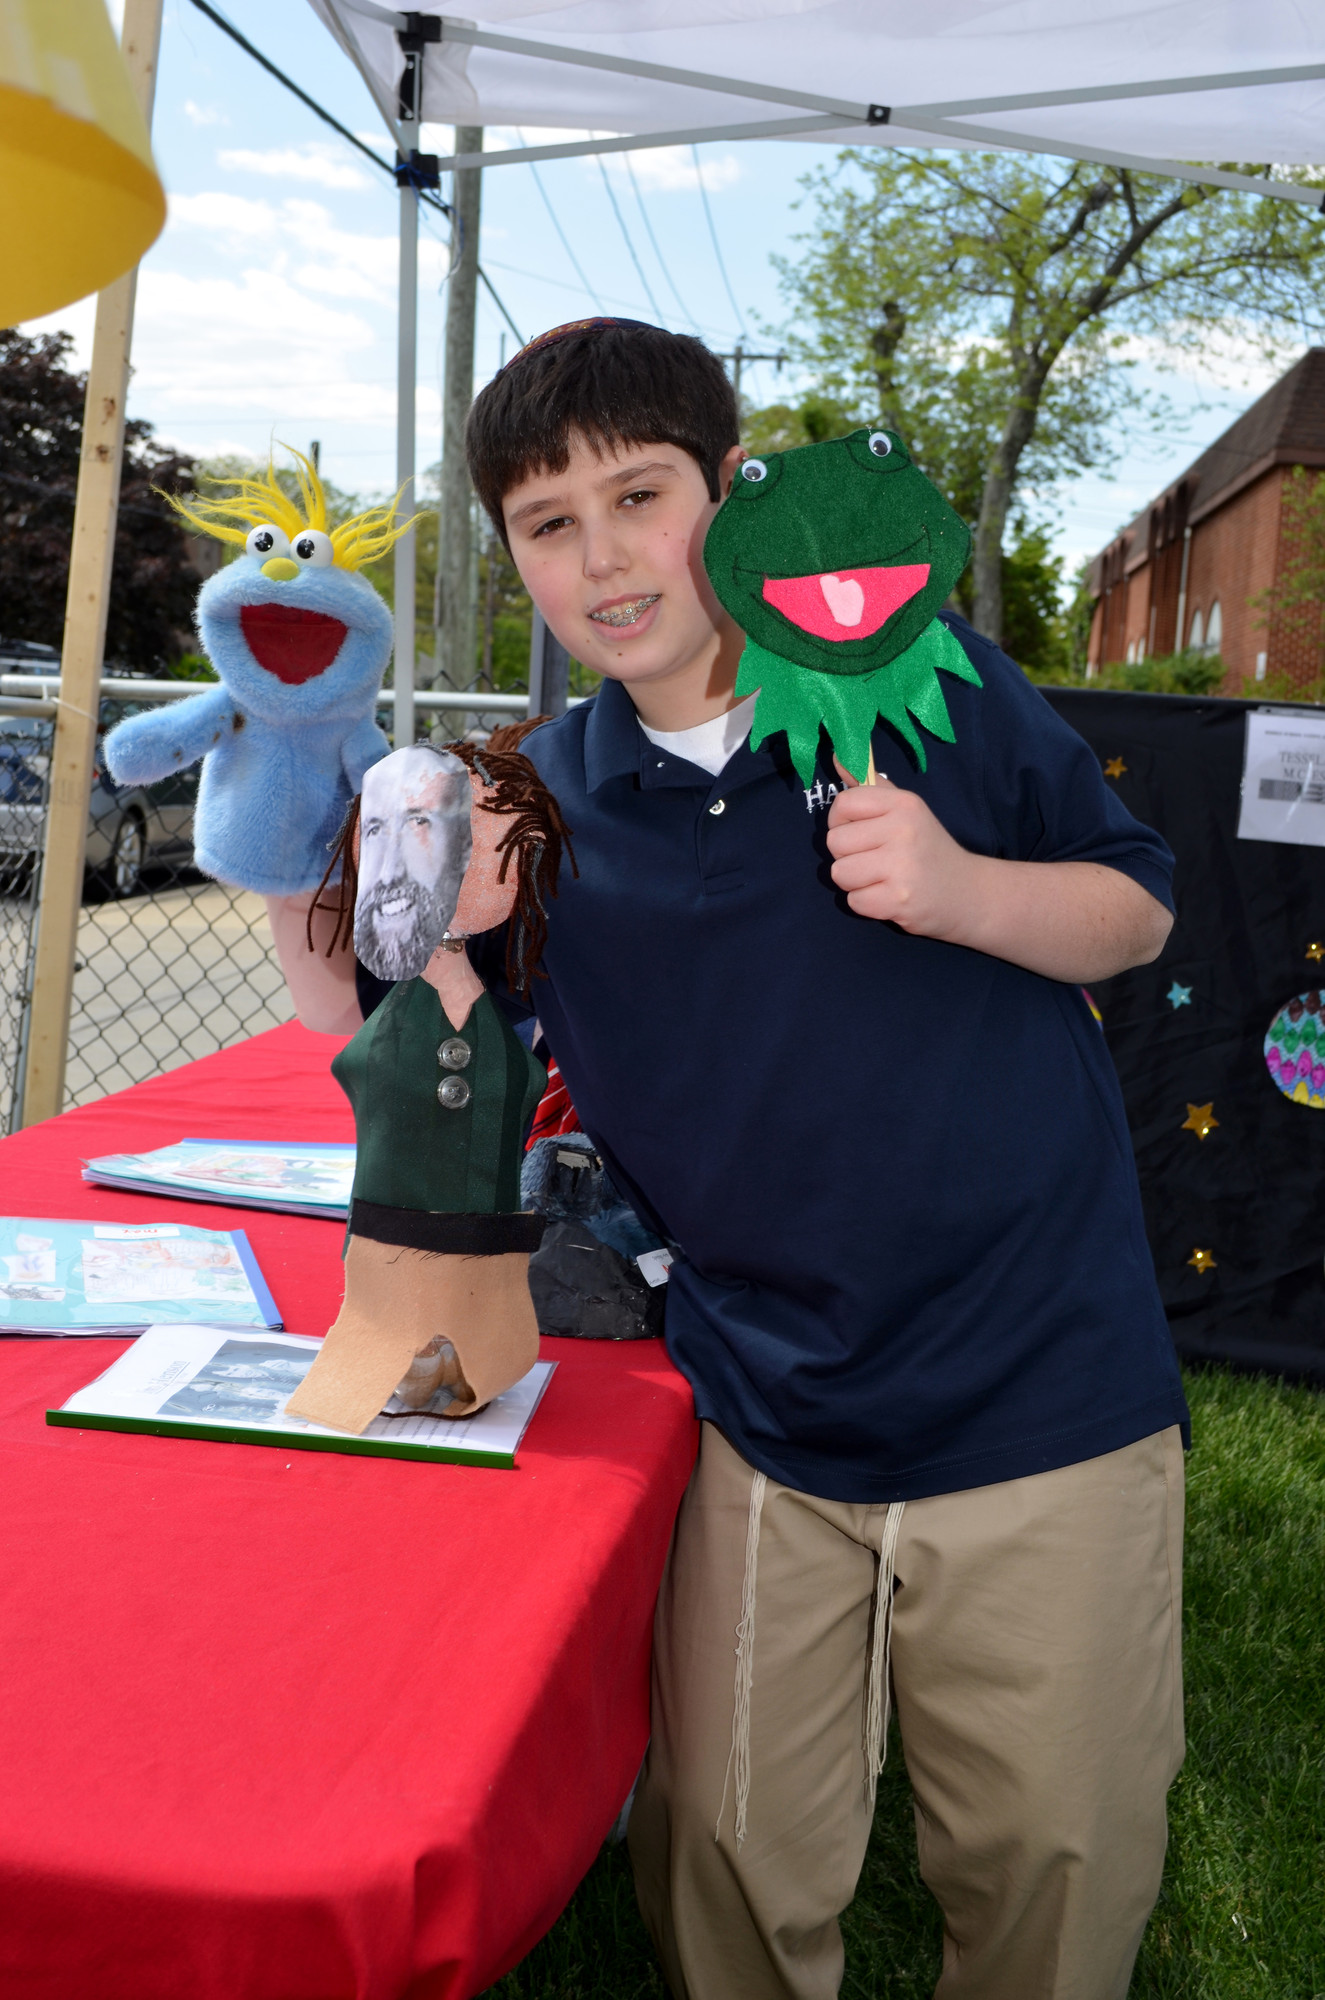 Maxwell Tepler, 13, displayed his project: puppets of Muppet creator Jim Henson and Henson's famous creation Kermit the Frog.